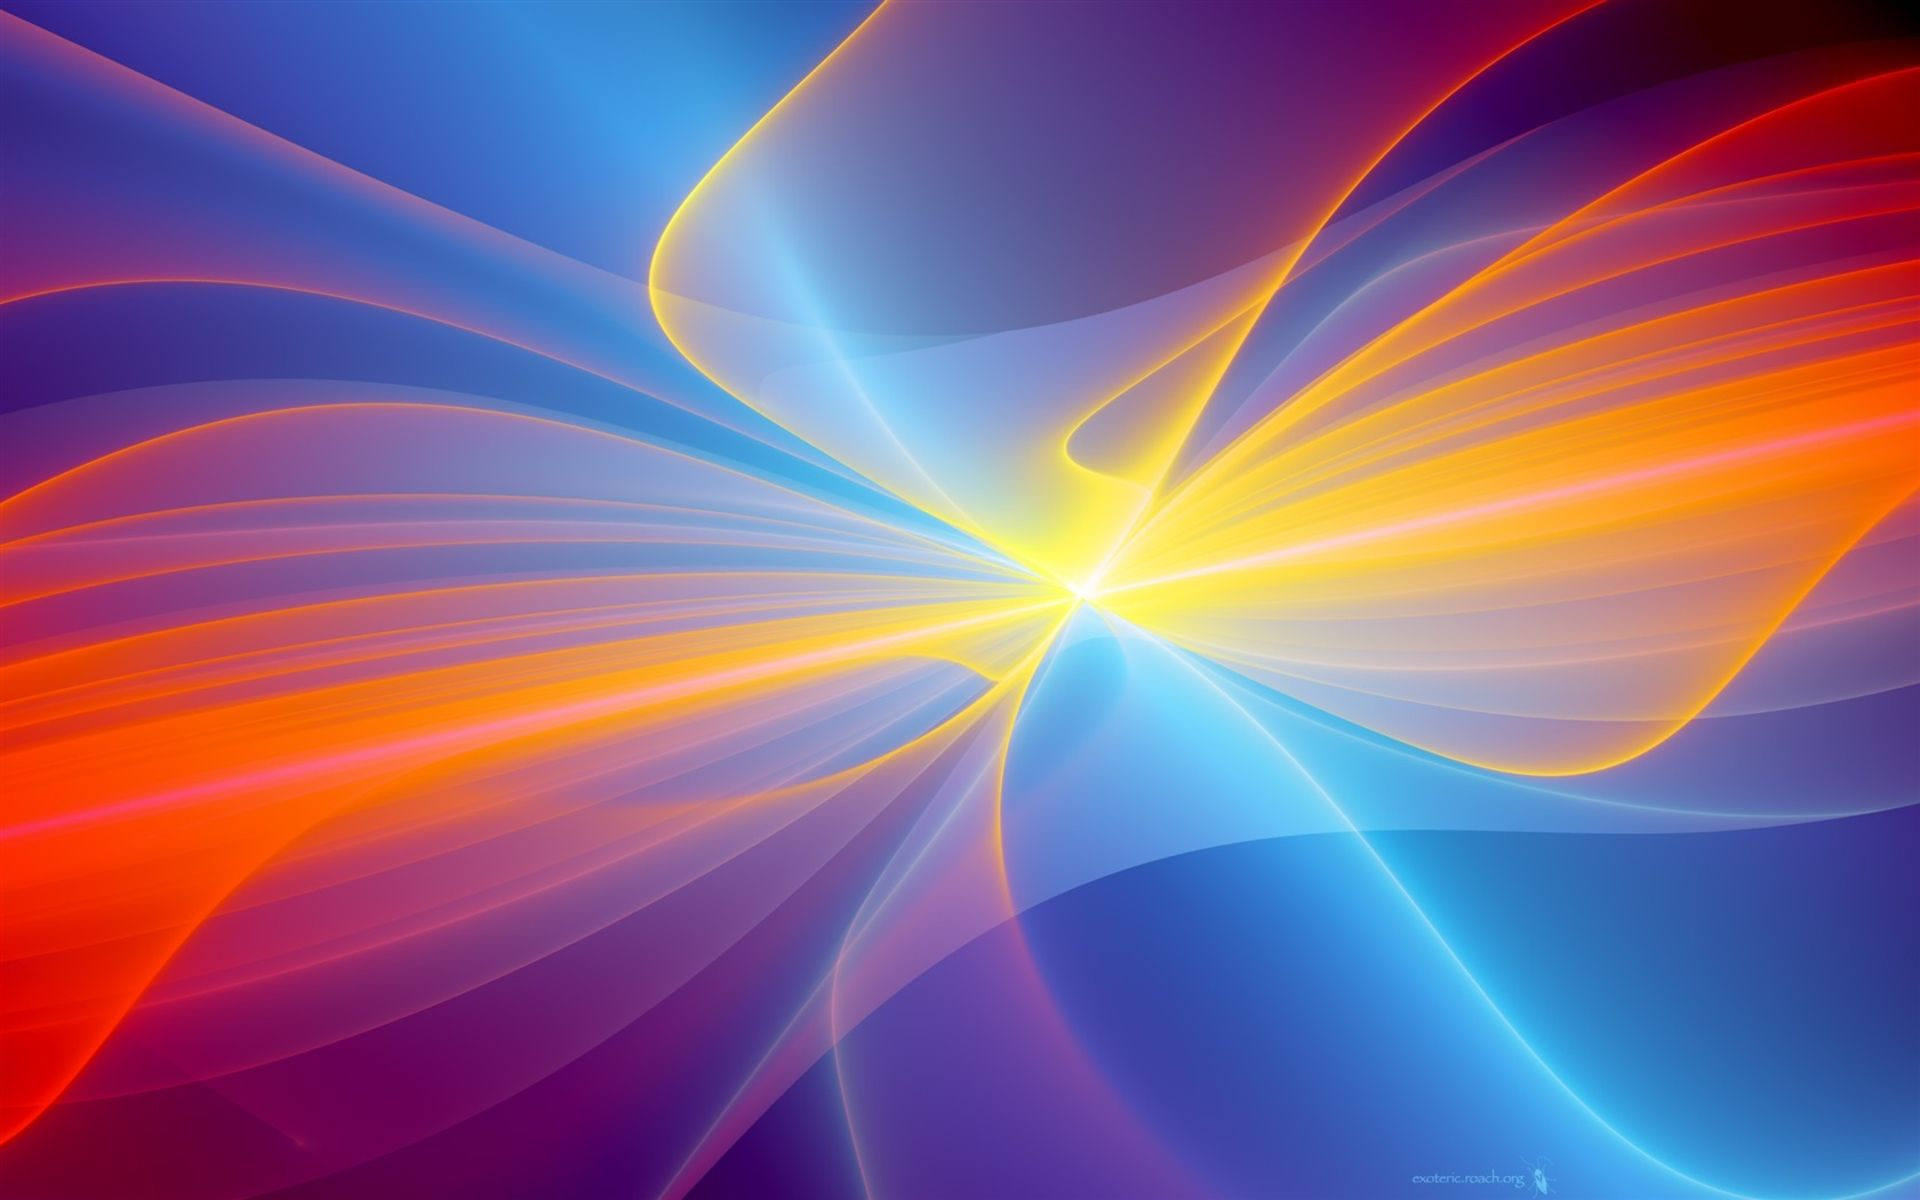 colorful aabstract background